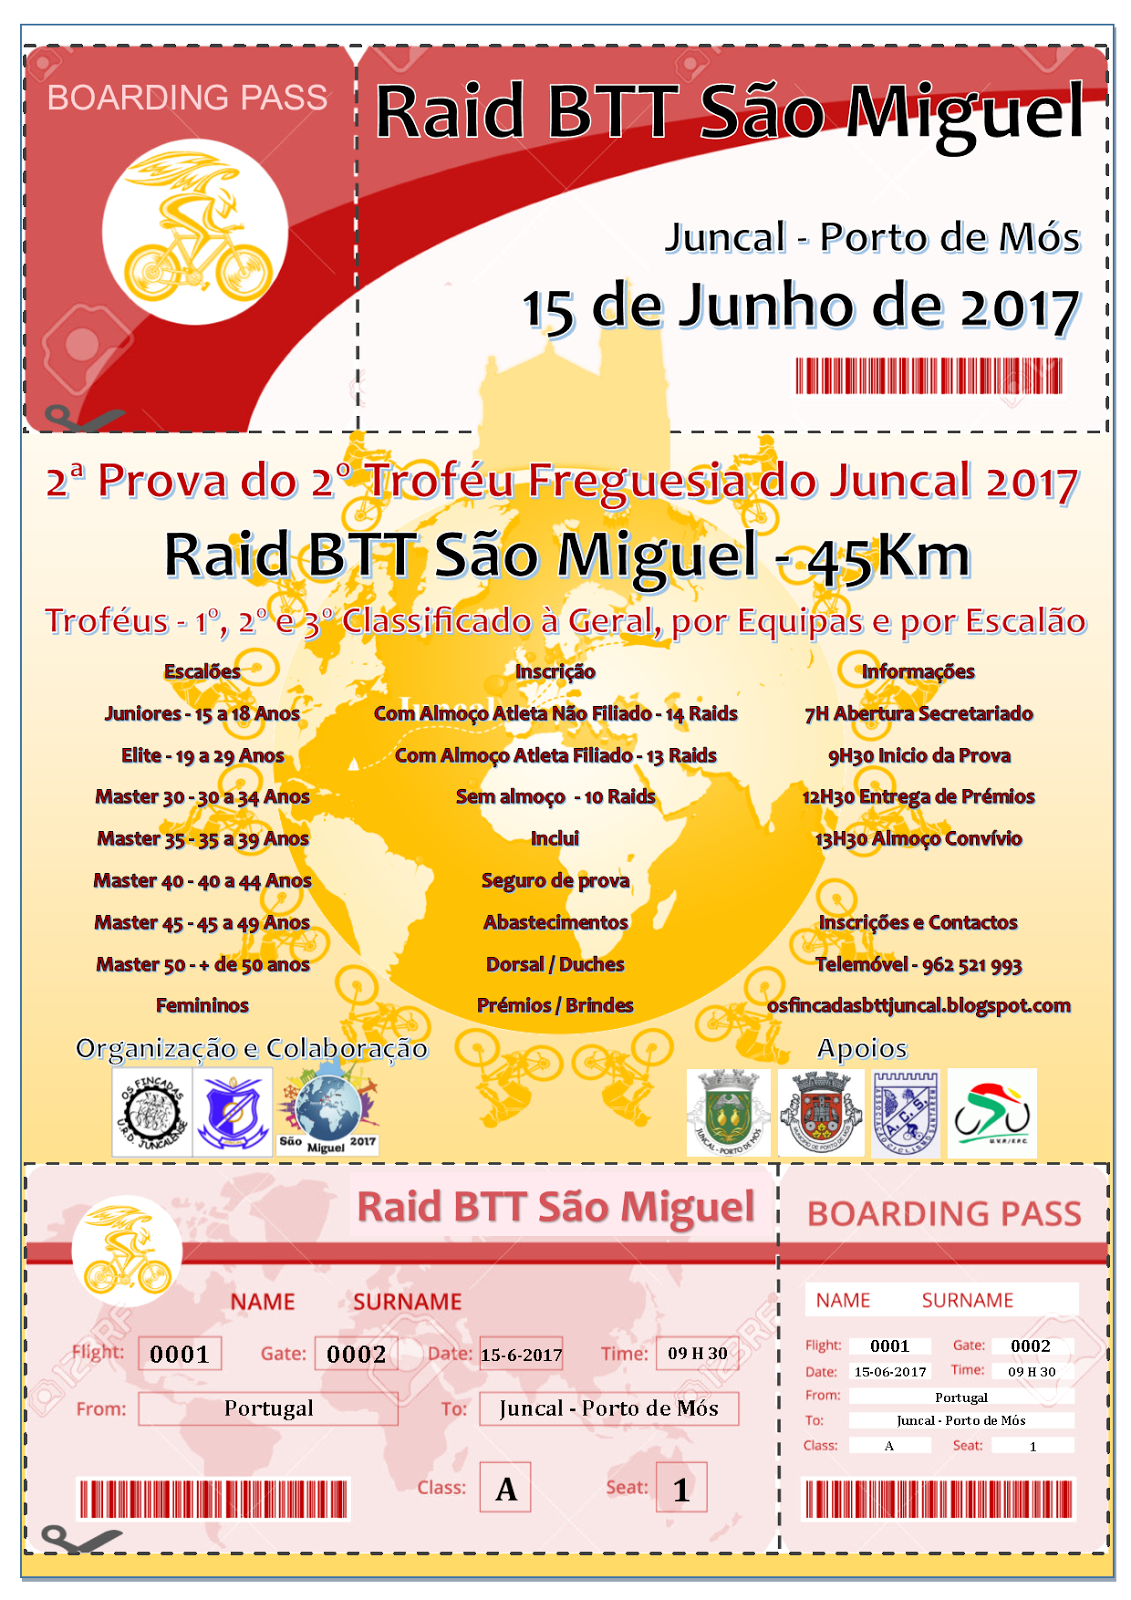 15JUN * JUNCAL - PORTO MÓS